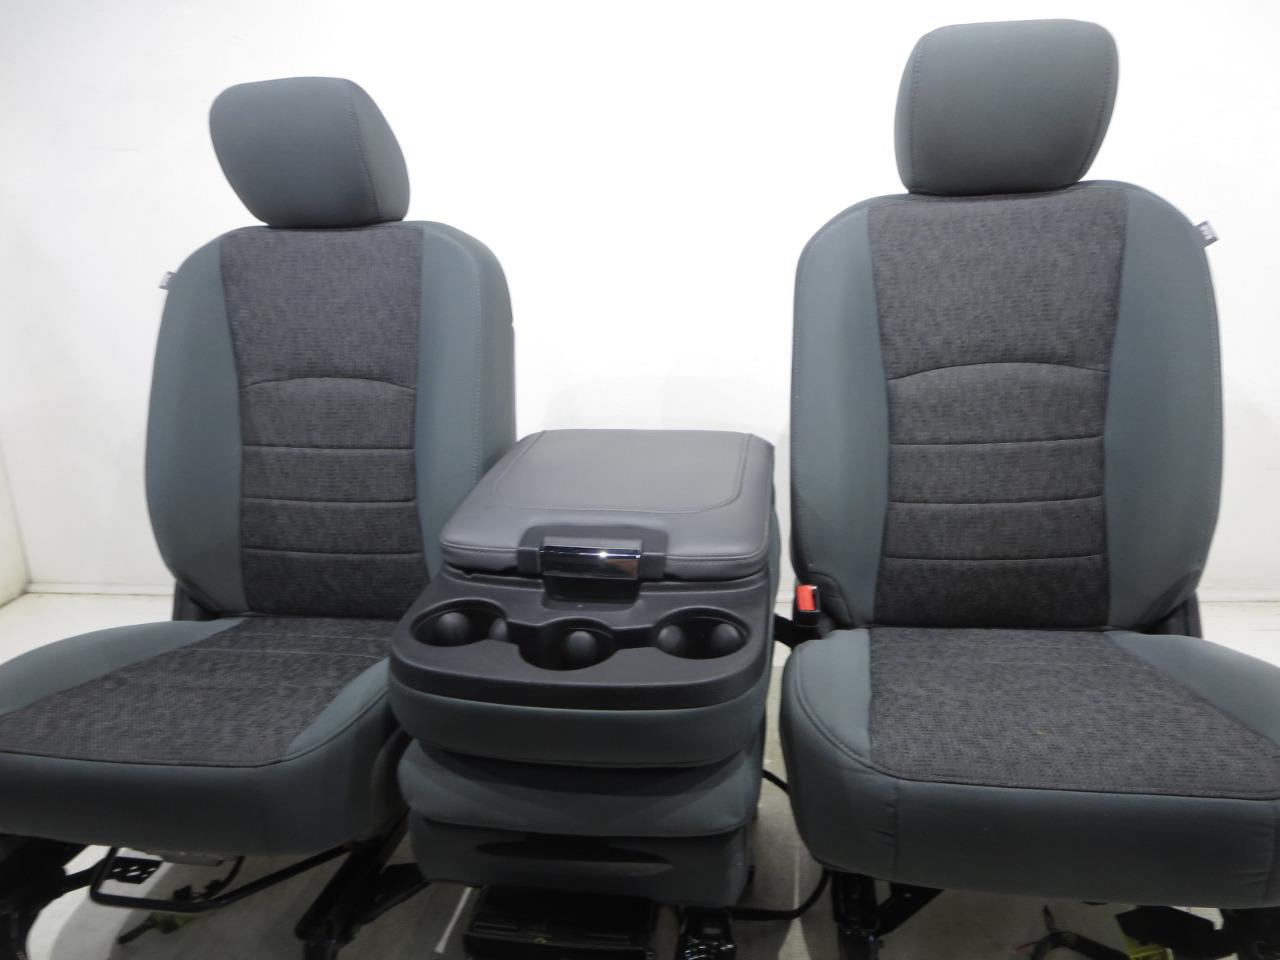 Replacement Dodge Ram Power Cloth Seats 2009 2010 2011 2012 2013 2014 2015 2016 2017 2018